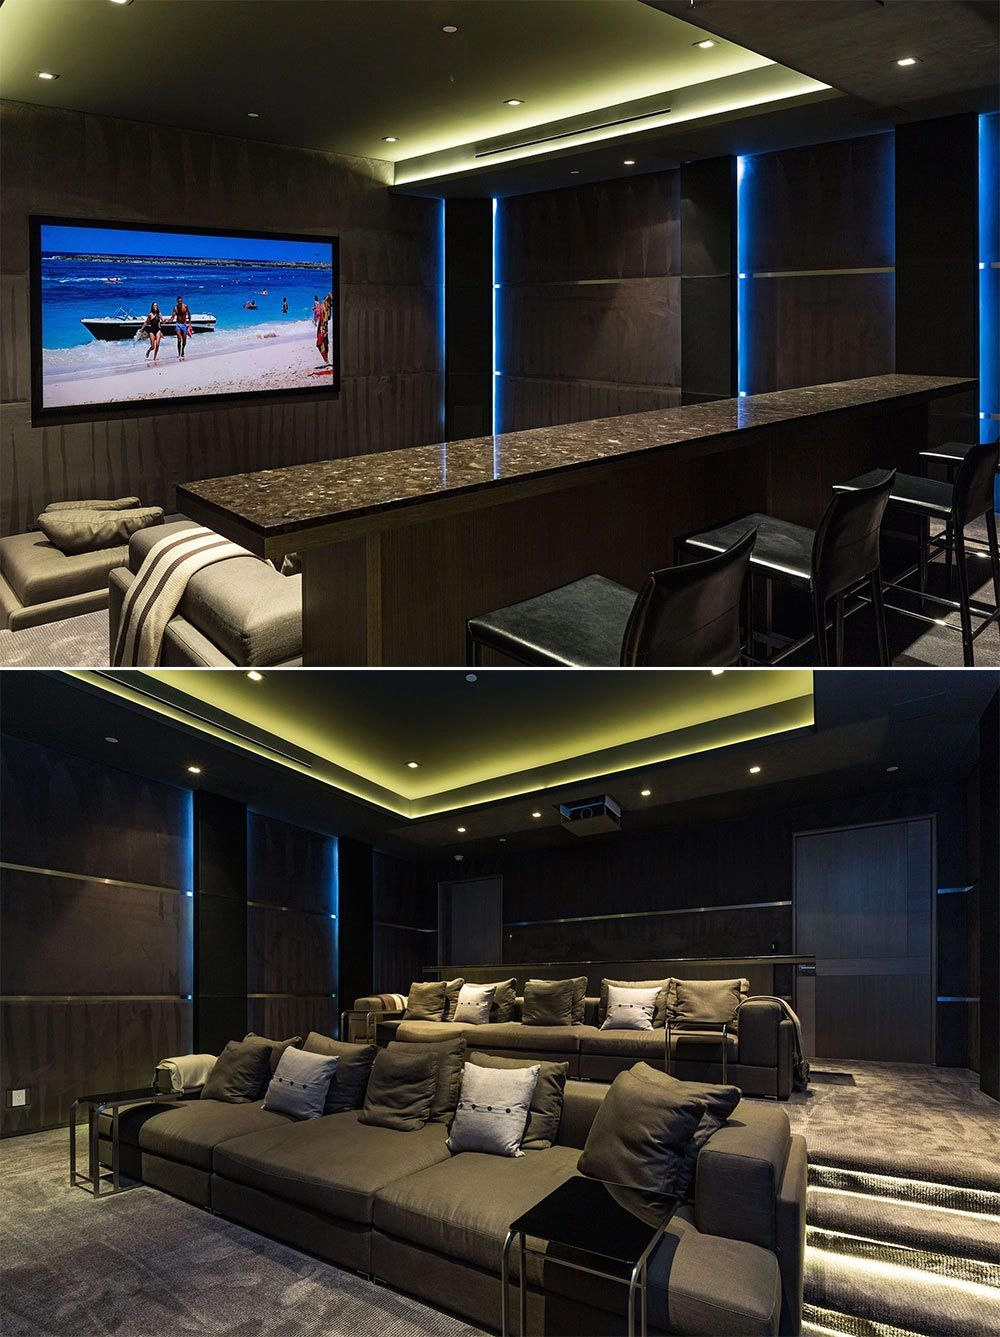 Basement home theater ideas on  budget tags finished unfinished diy small also design awesome picture dream rh pinterest